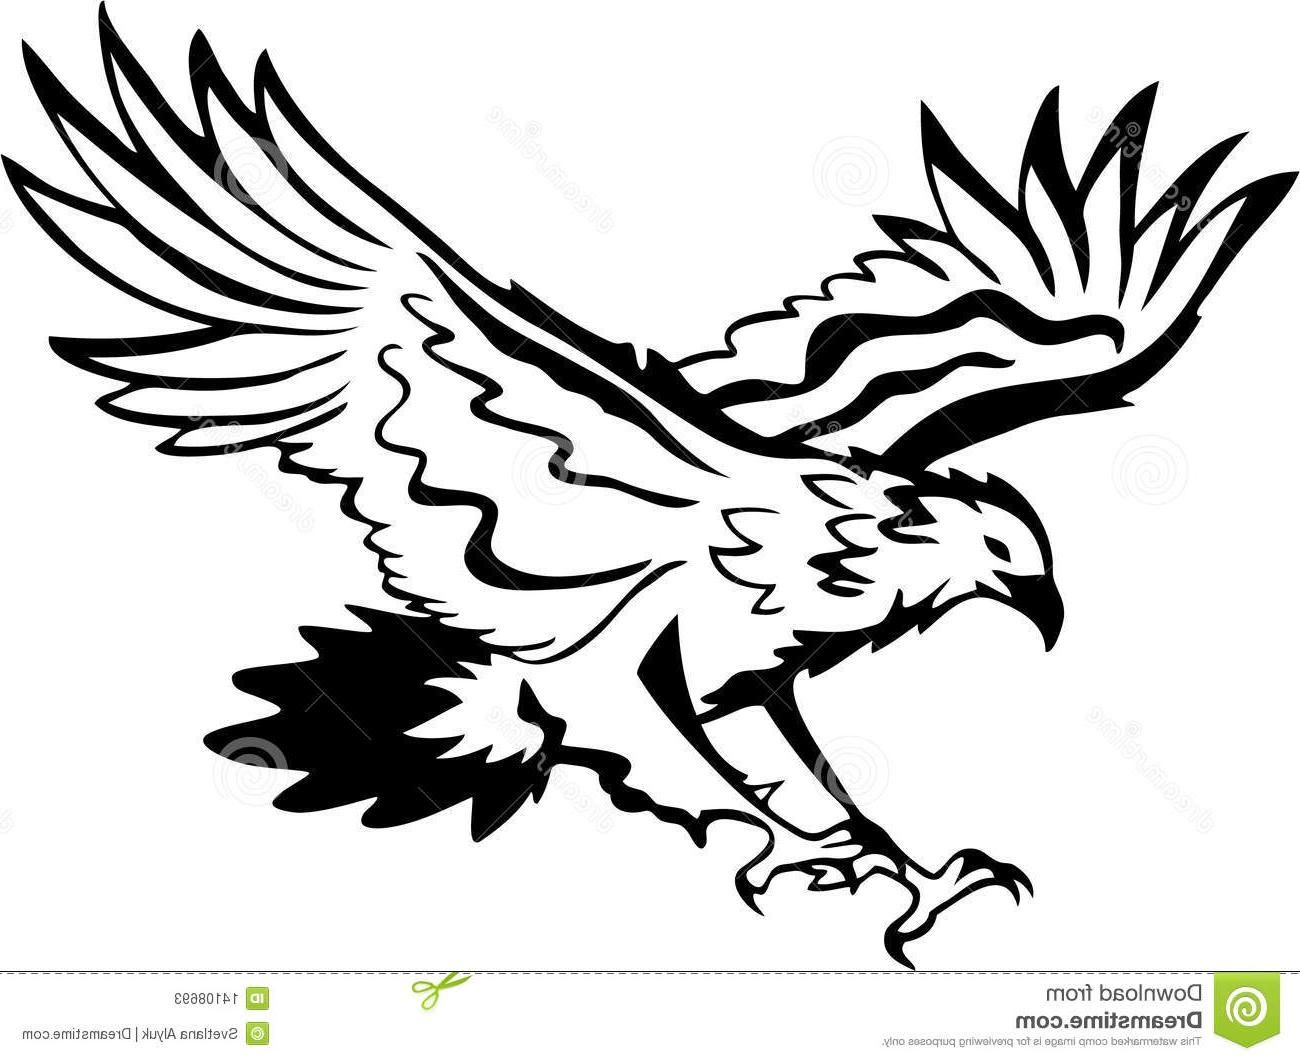 Black and white eagle clipart picture free library Eagle Clip Art Black and White | Best Free Eagle Flying Clipart ... picture free library